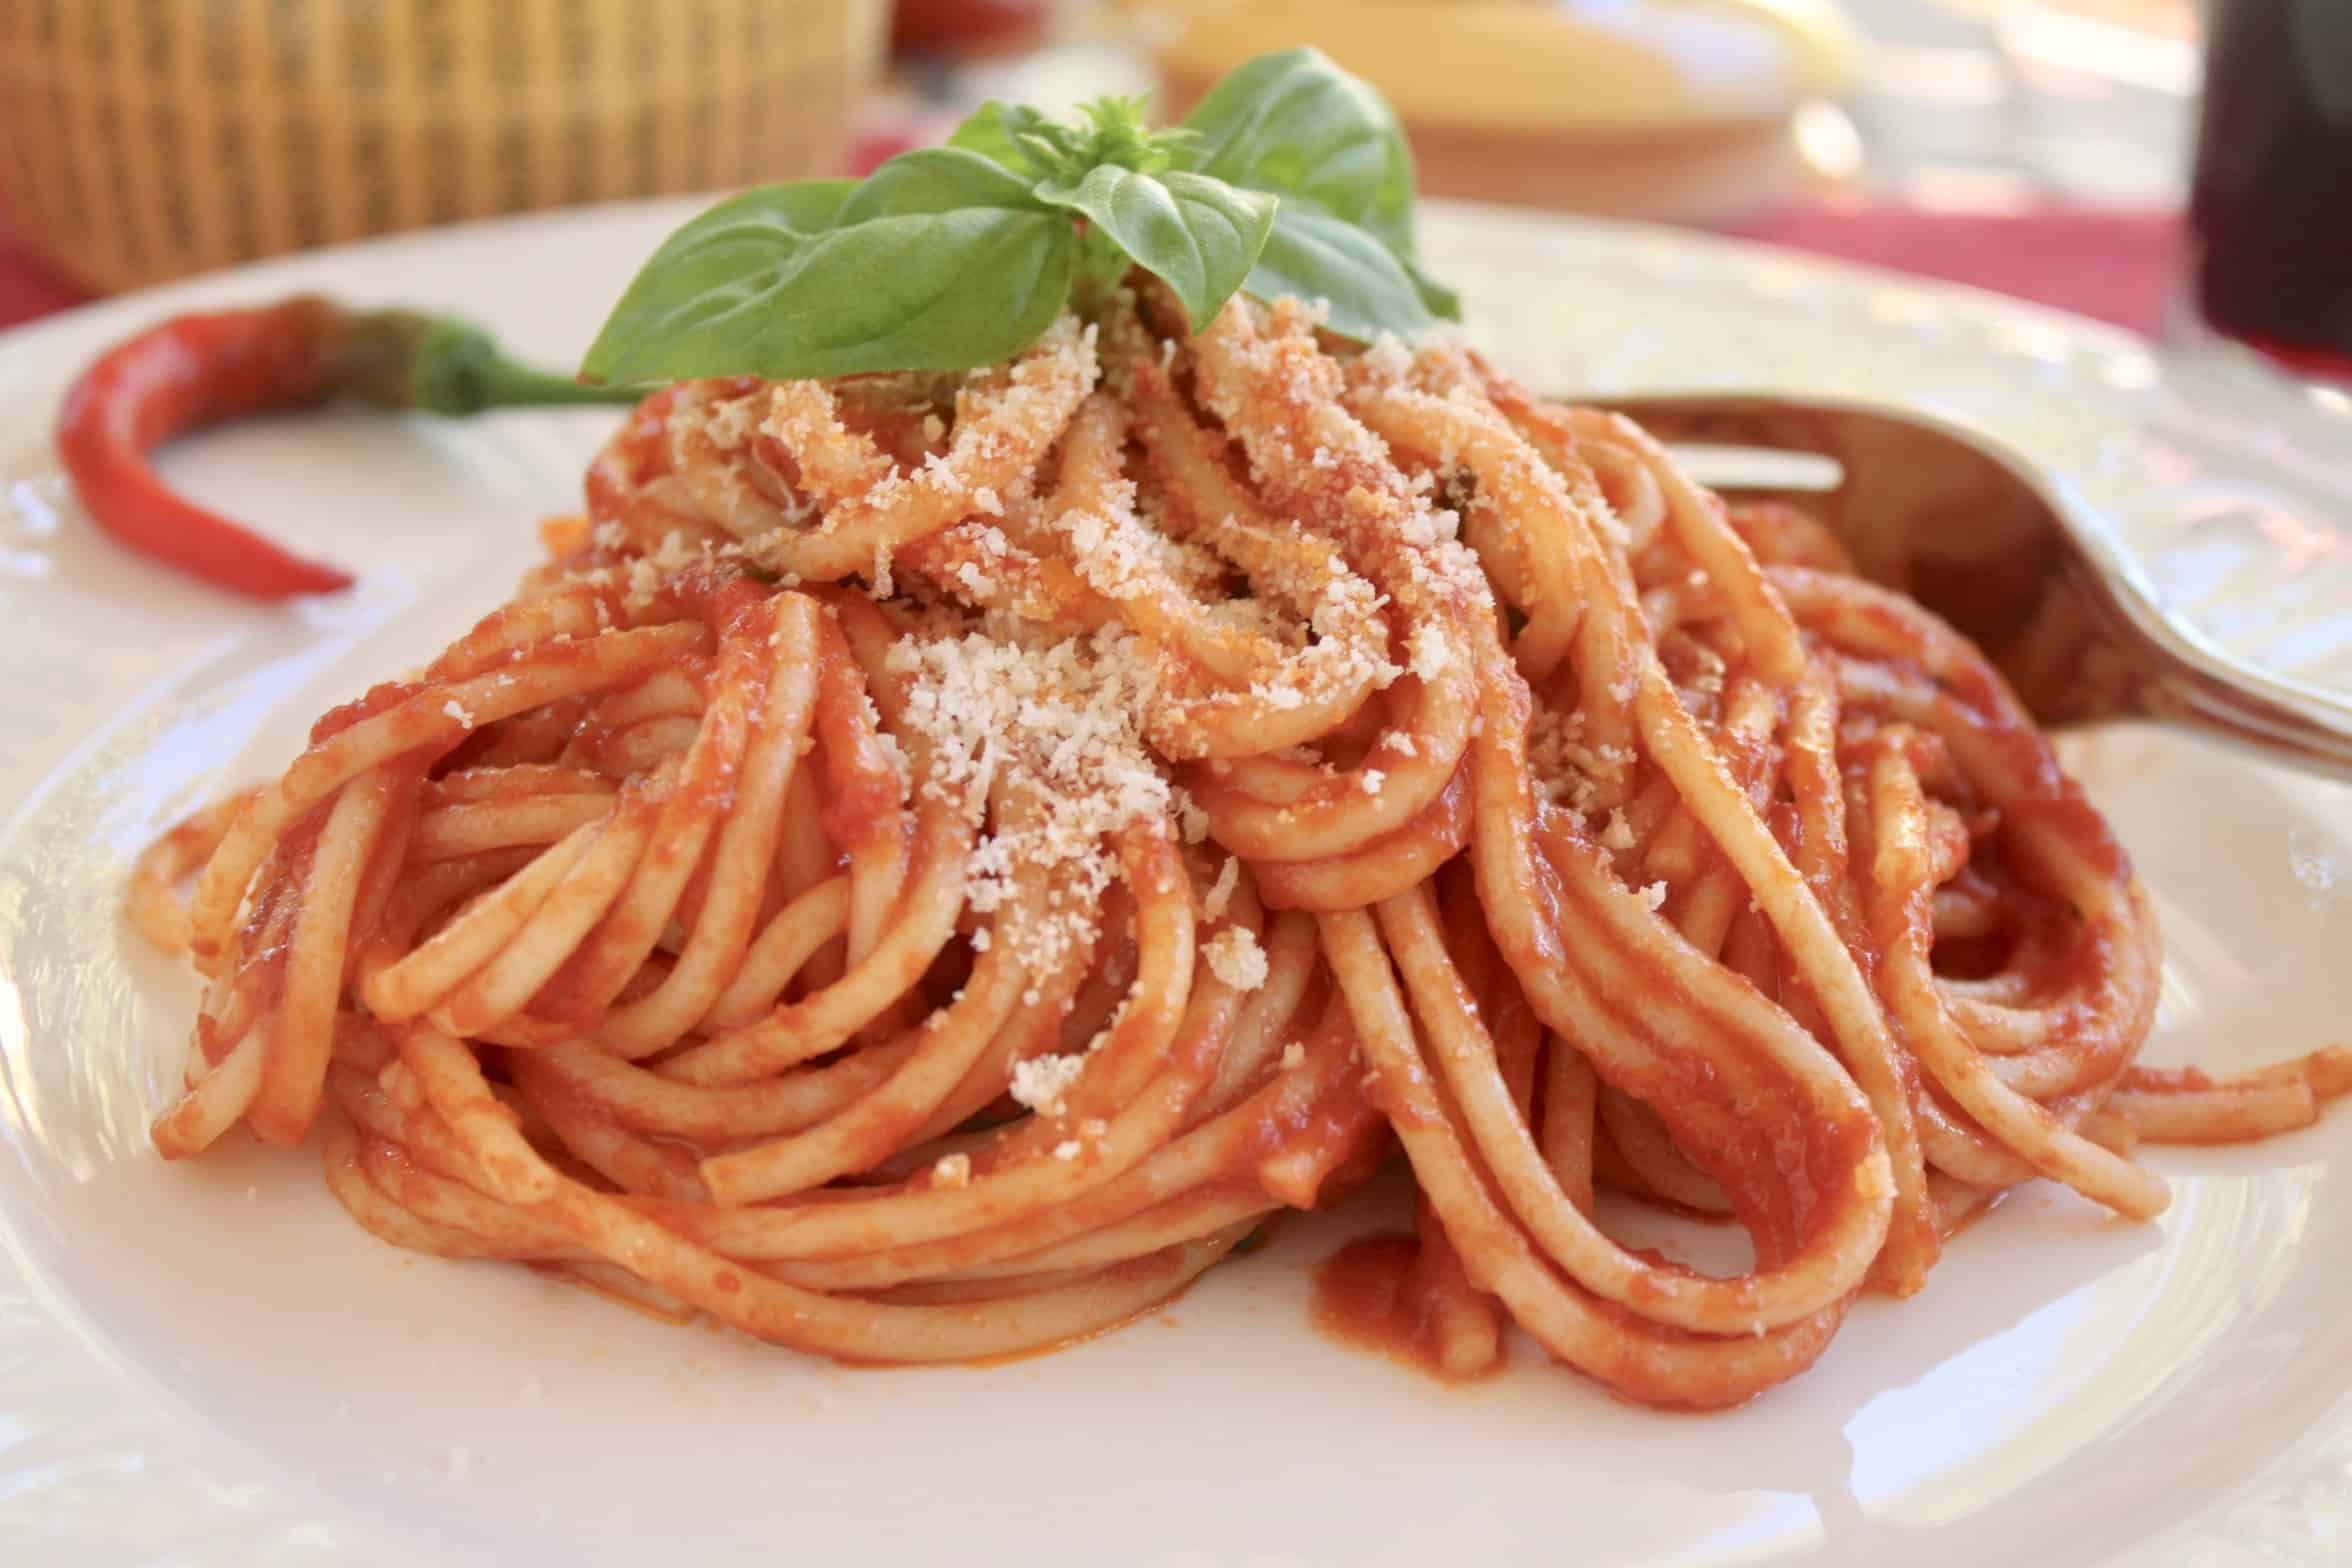 spaghetti with parmesan and basil on a plate